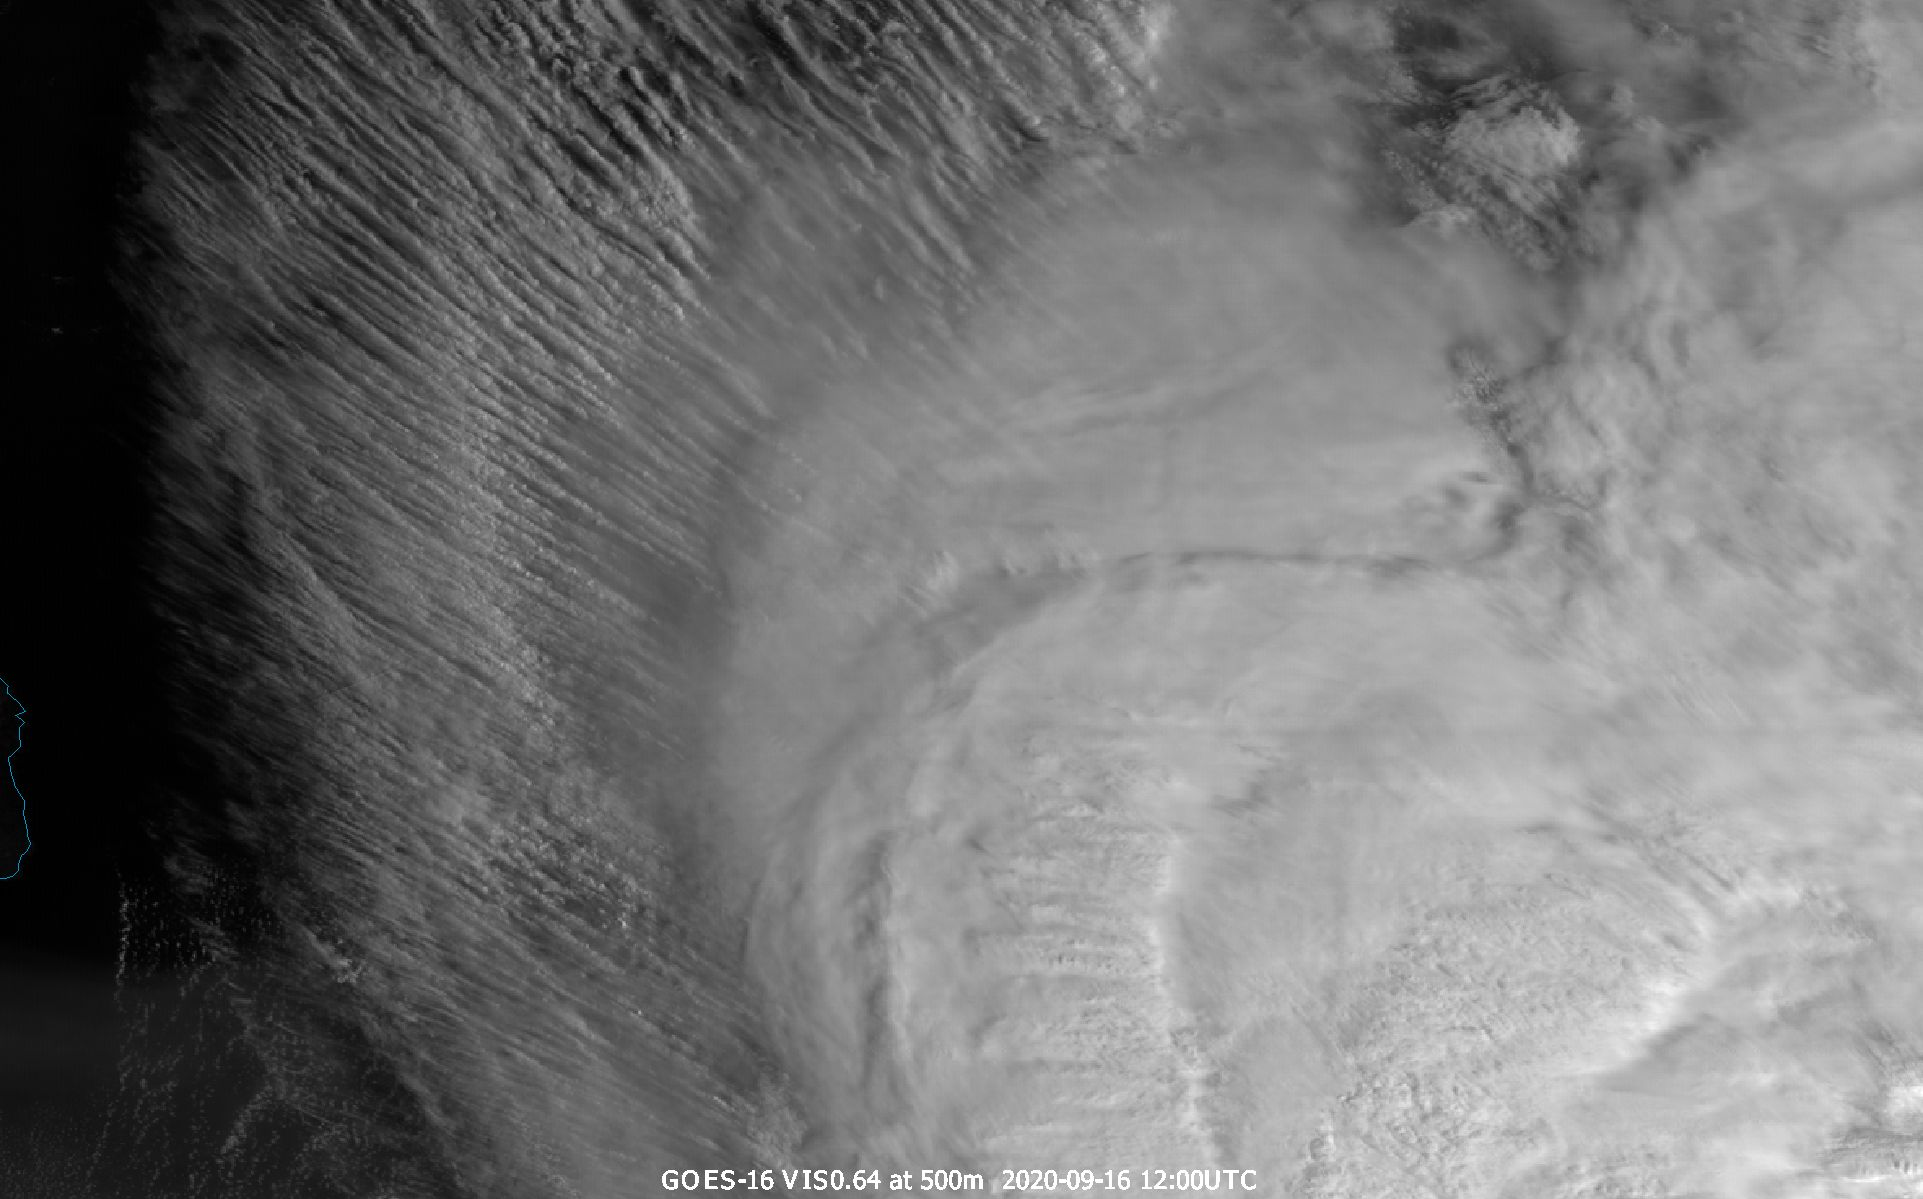 GOES-16 VIS0.64 channel with resolution of 500m, 16 September 2020, 12:00 UTC